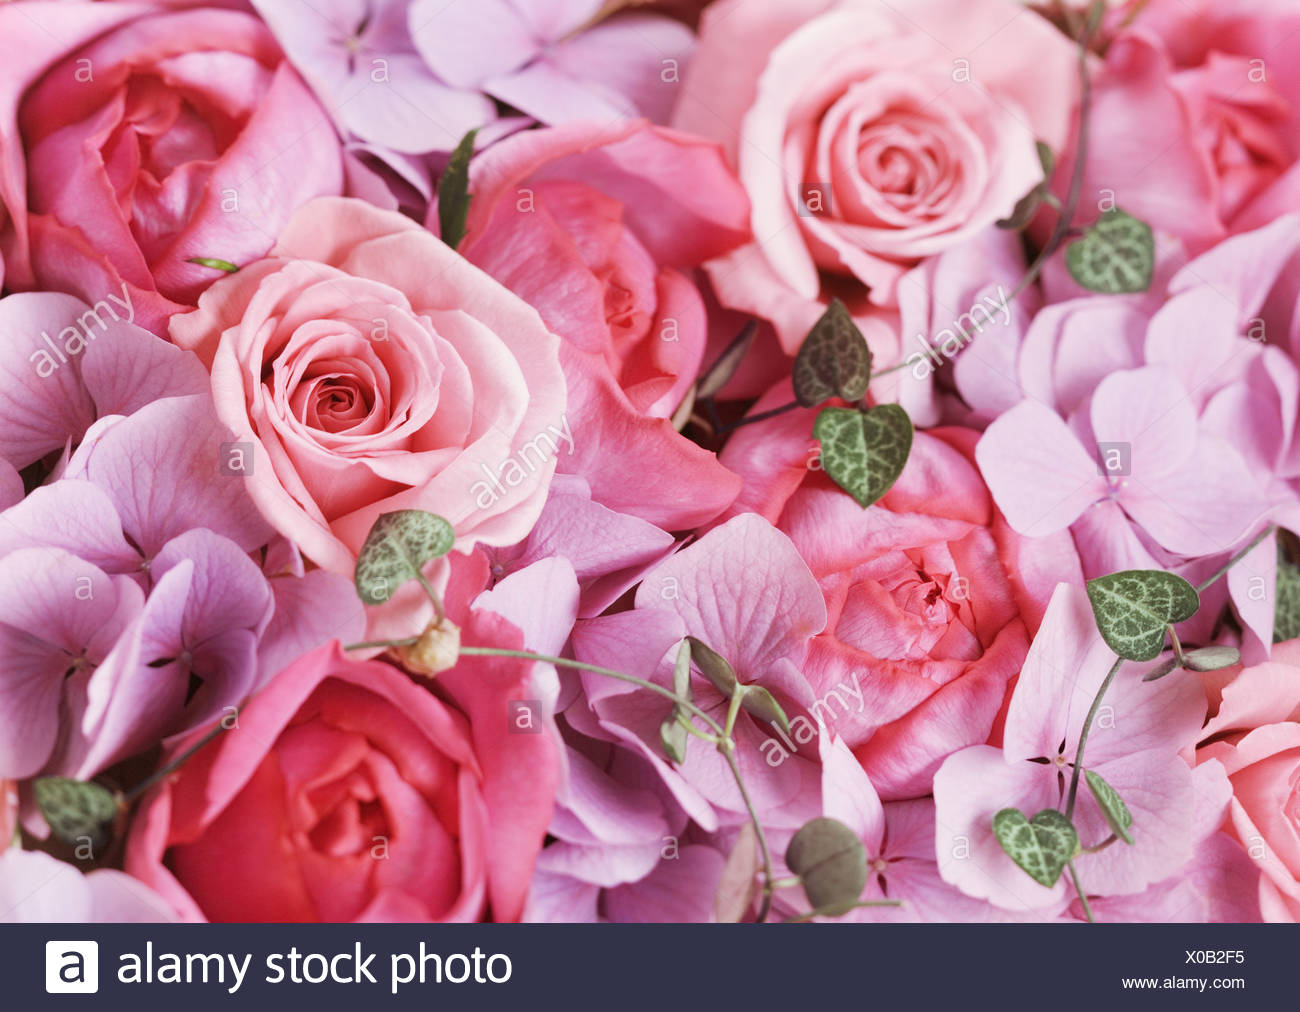 Rose and Hydrangea - Stock Image